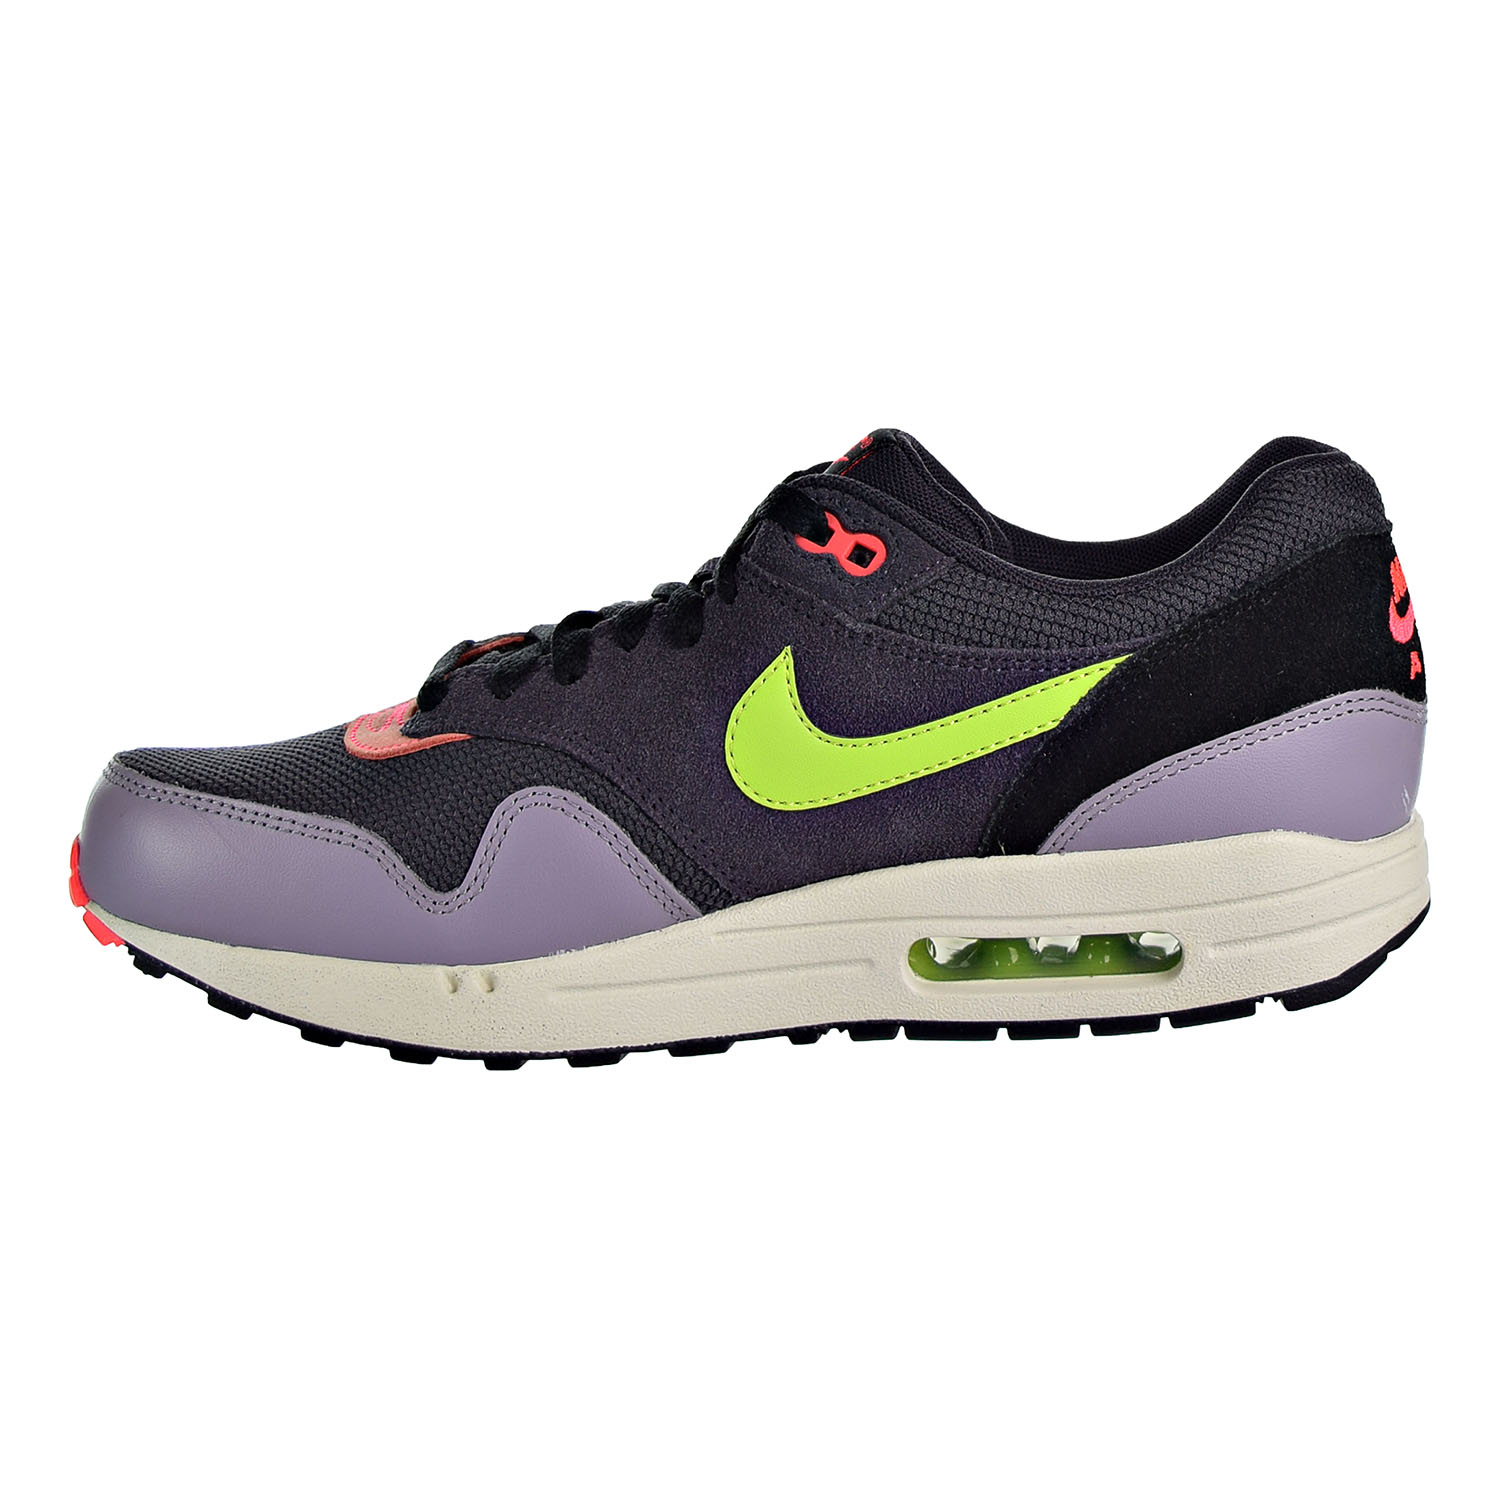 cheap for discount a2931 d8d56 Nike Air Max 1 Essential Men's Sneaker Shoes Cave Purple/Green 537383-500